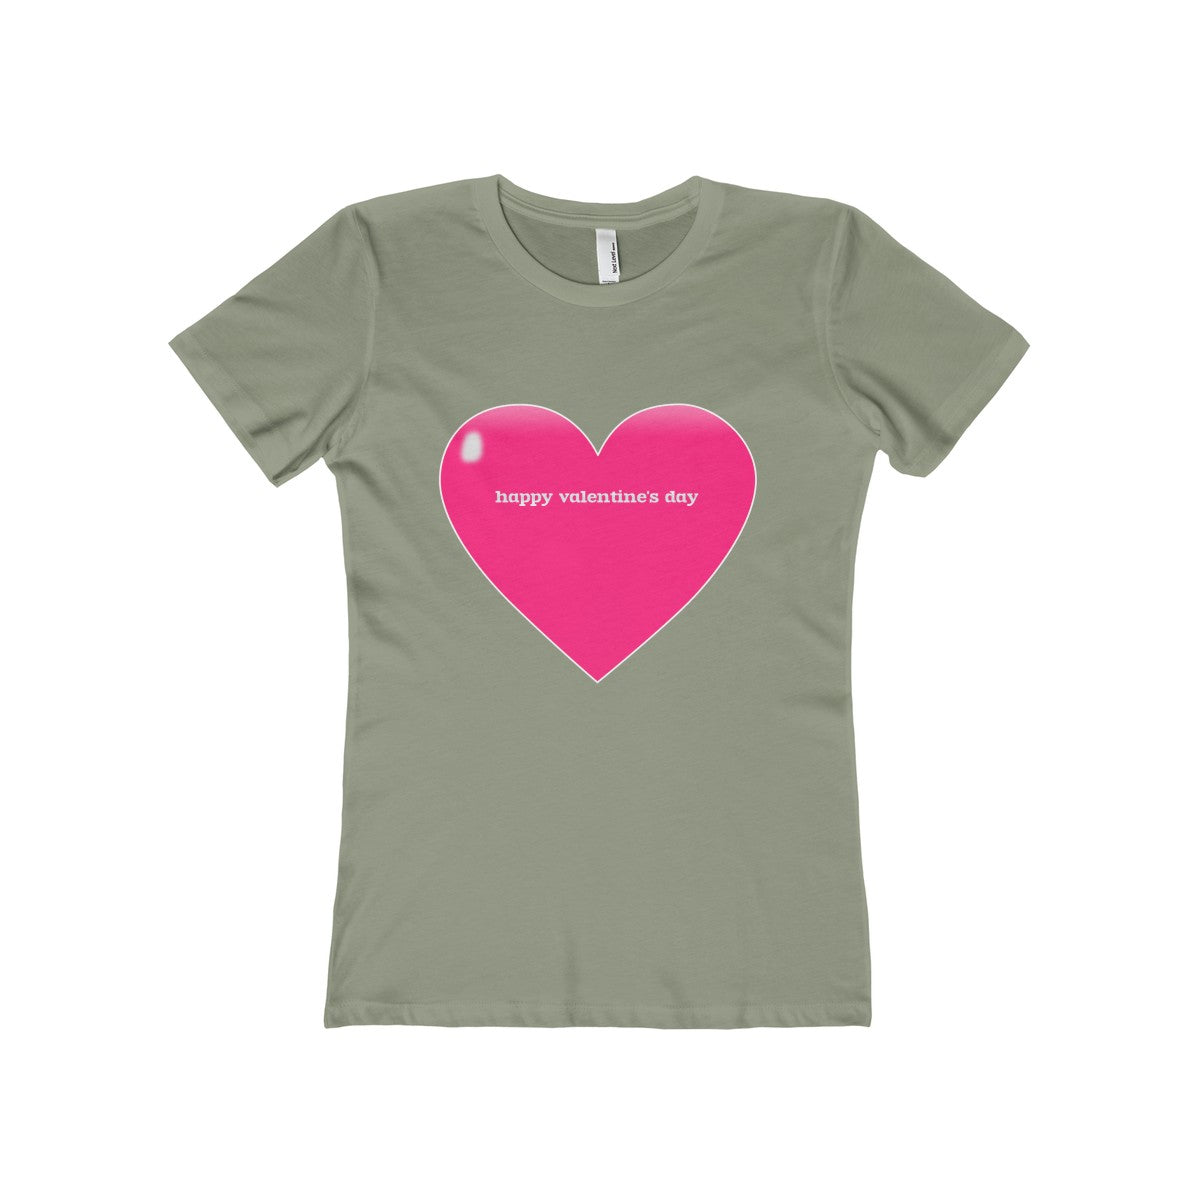 Happy Valentine's Day Women's The Boyfriend Tee - PureDesignTees